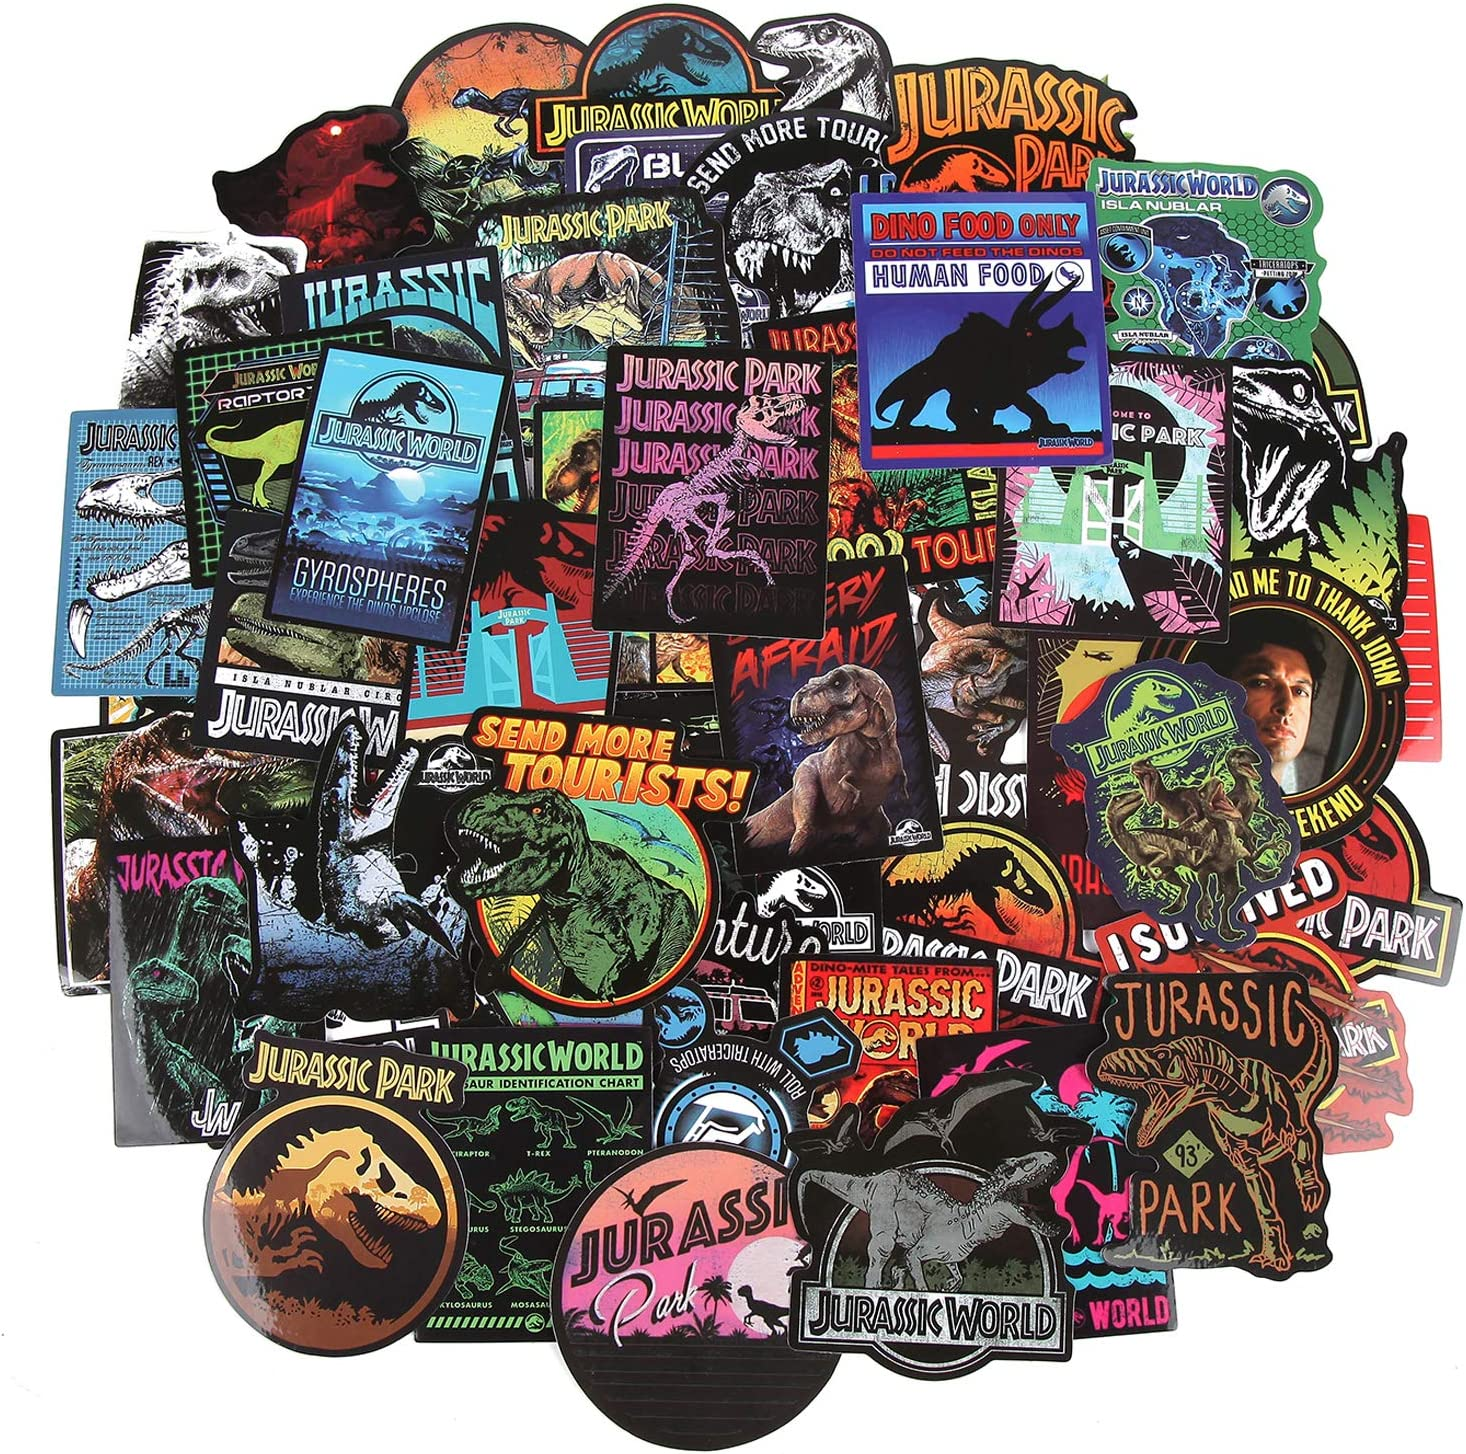 Jurassic Park Dinosaur Stickers 75 pcs/Pack Stickers Variety Vinyl Car Sticker Motorcycle Bicycle Luggage Decal Graffiti Patches Skateboard Stickers for Laptop Stickers for Kid and Adult